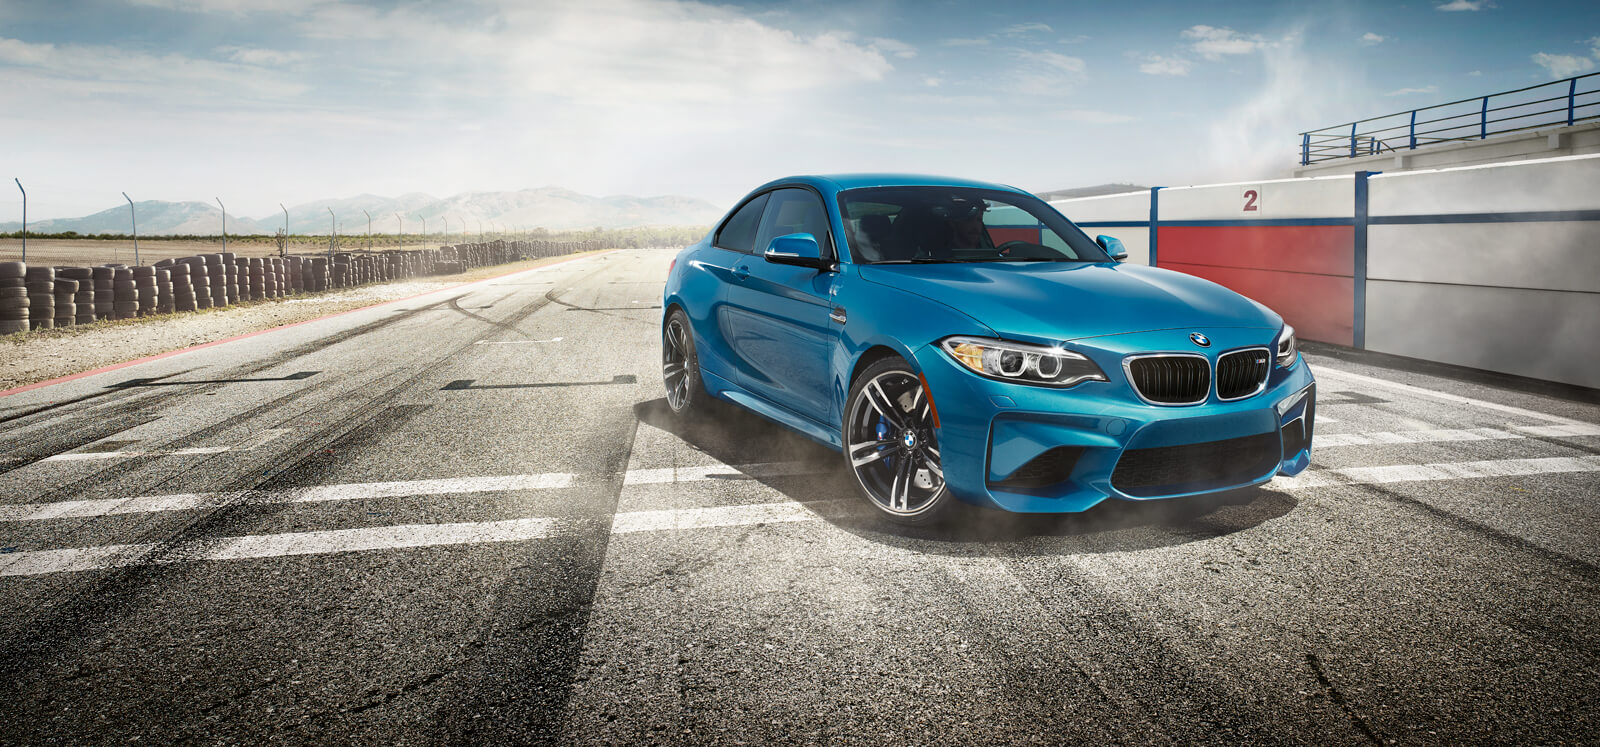 Rent A Bmw M2 With Luxury Sport Car Hire